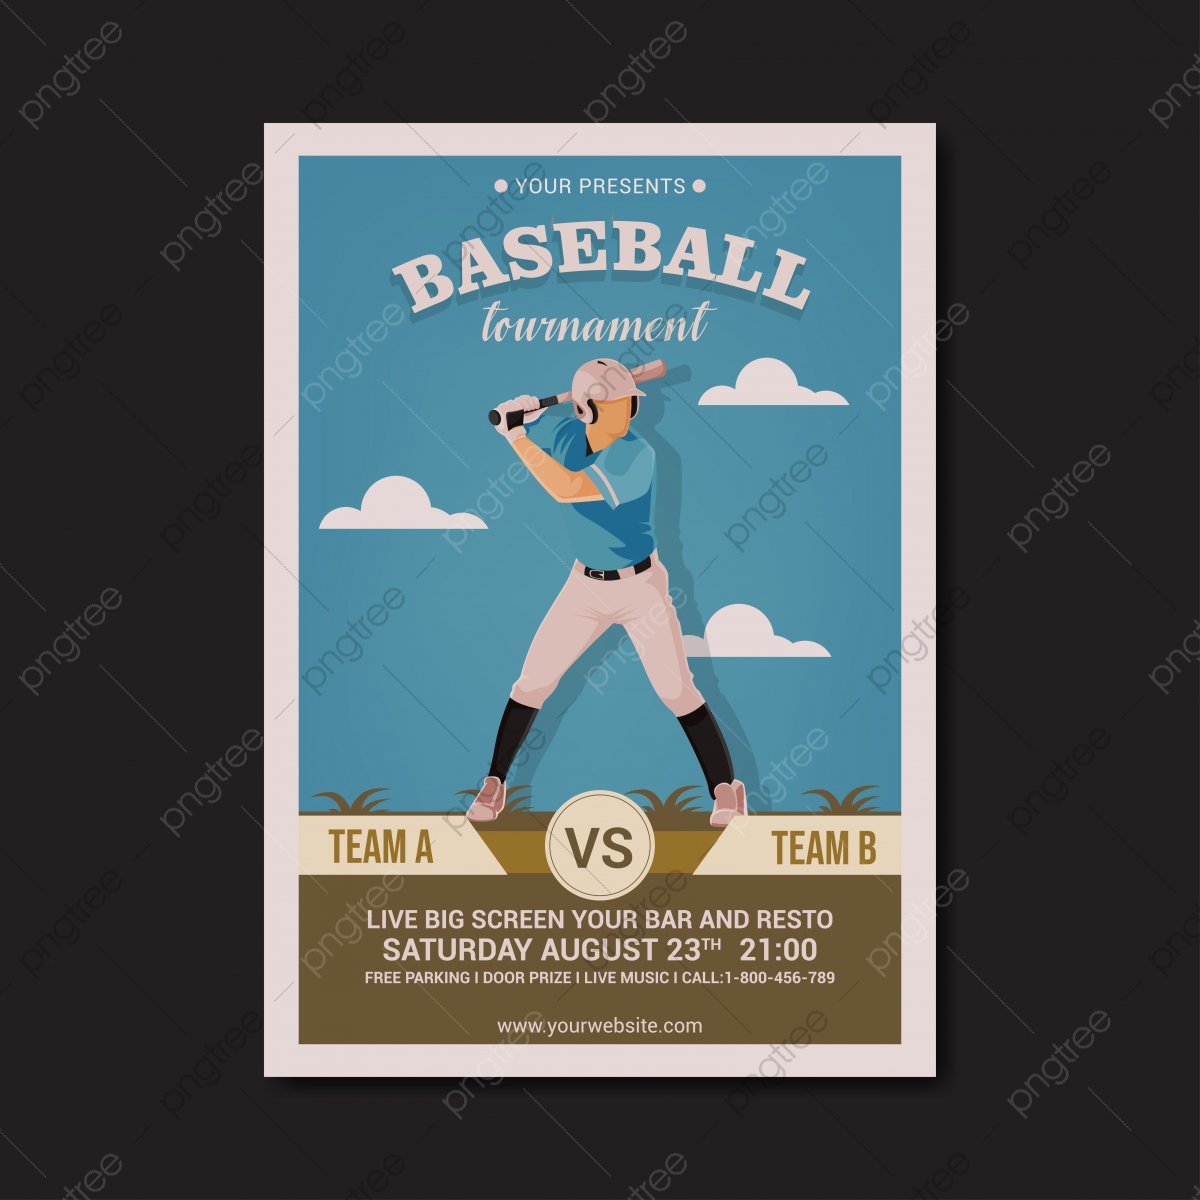 Free Baseball Flyer Template from png.pngtree.com